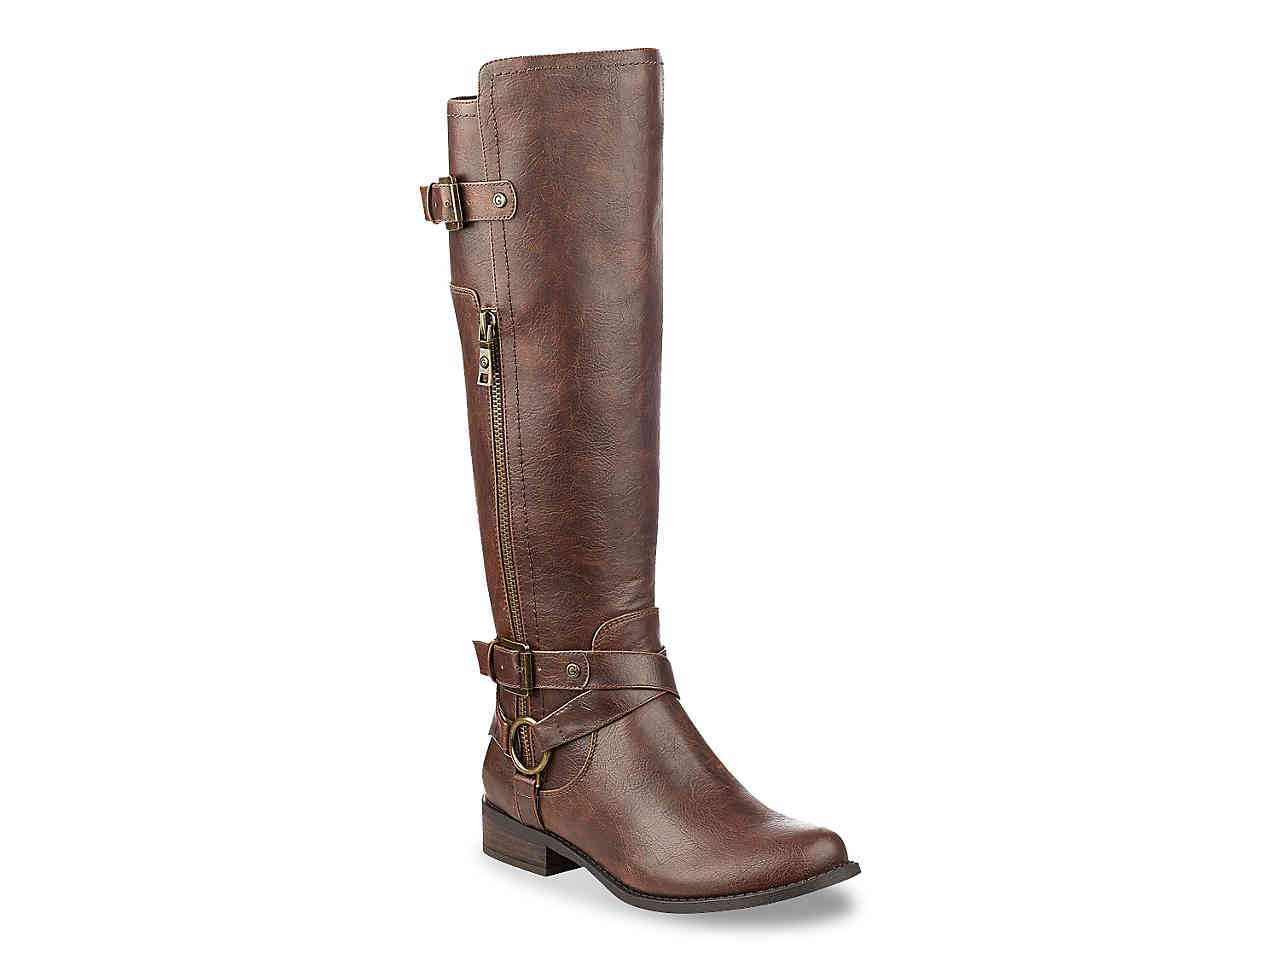 riding boots herly wide calf riding boot iairobx